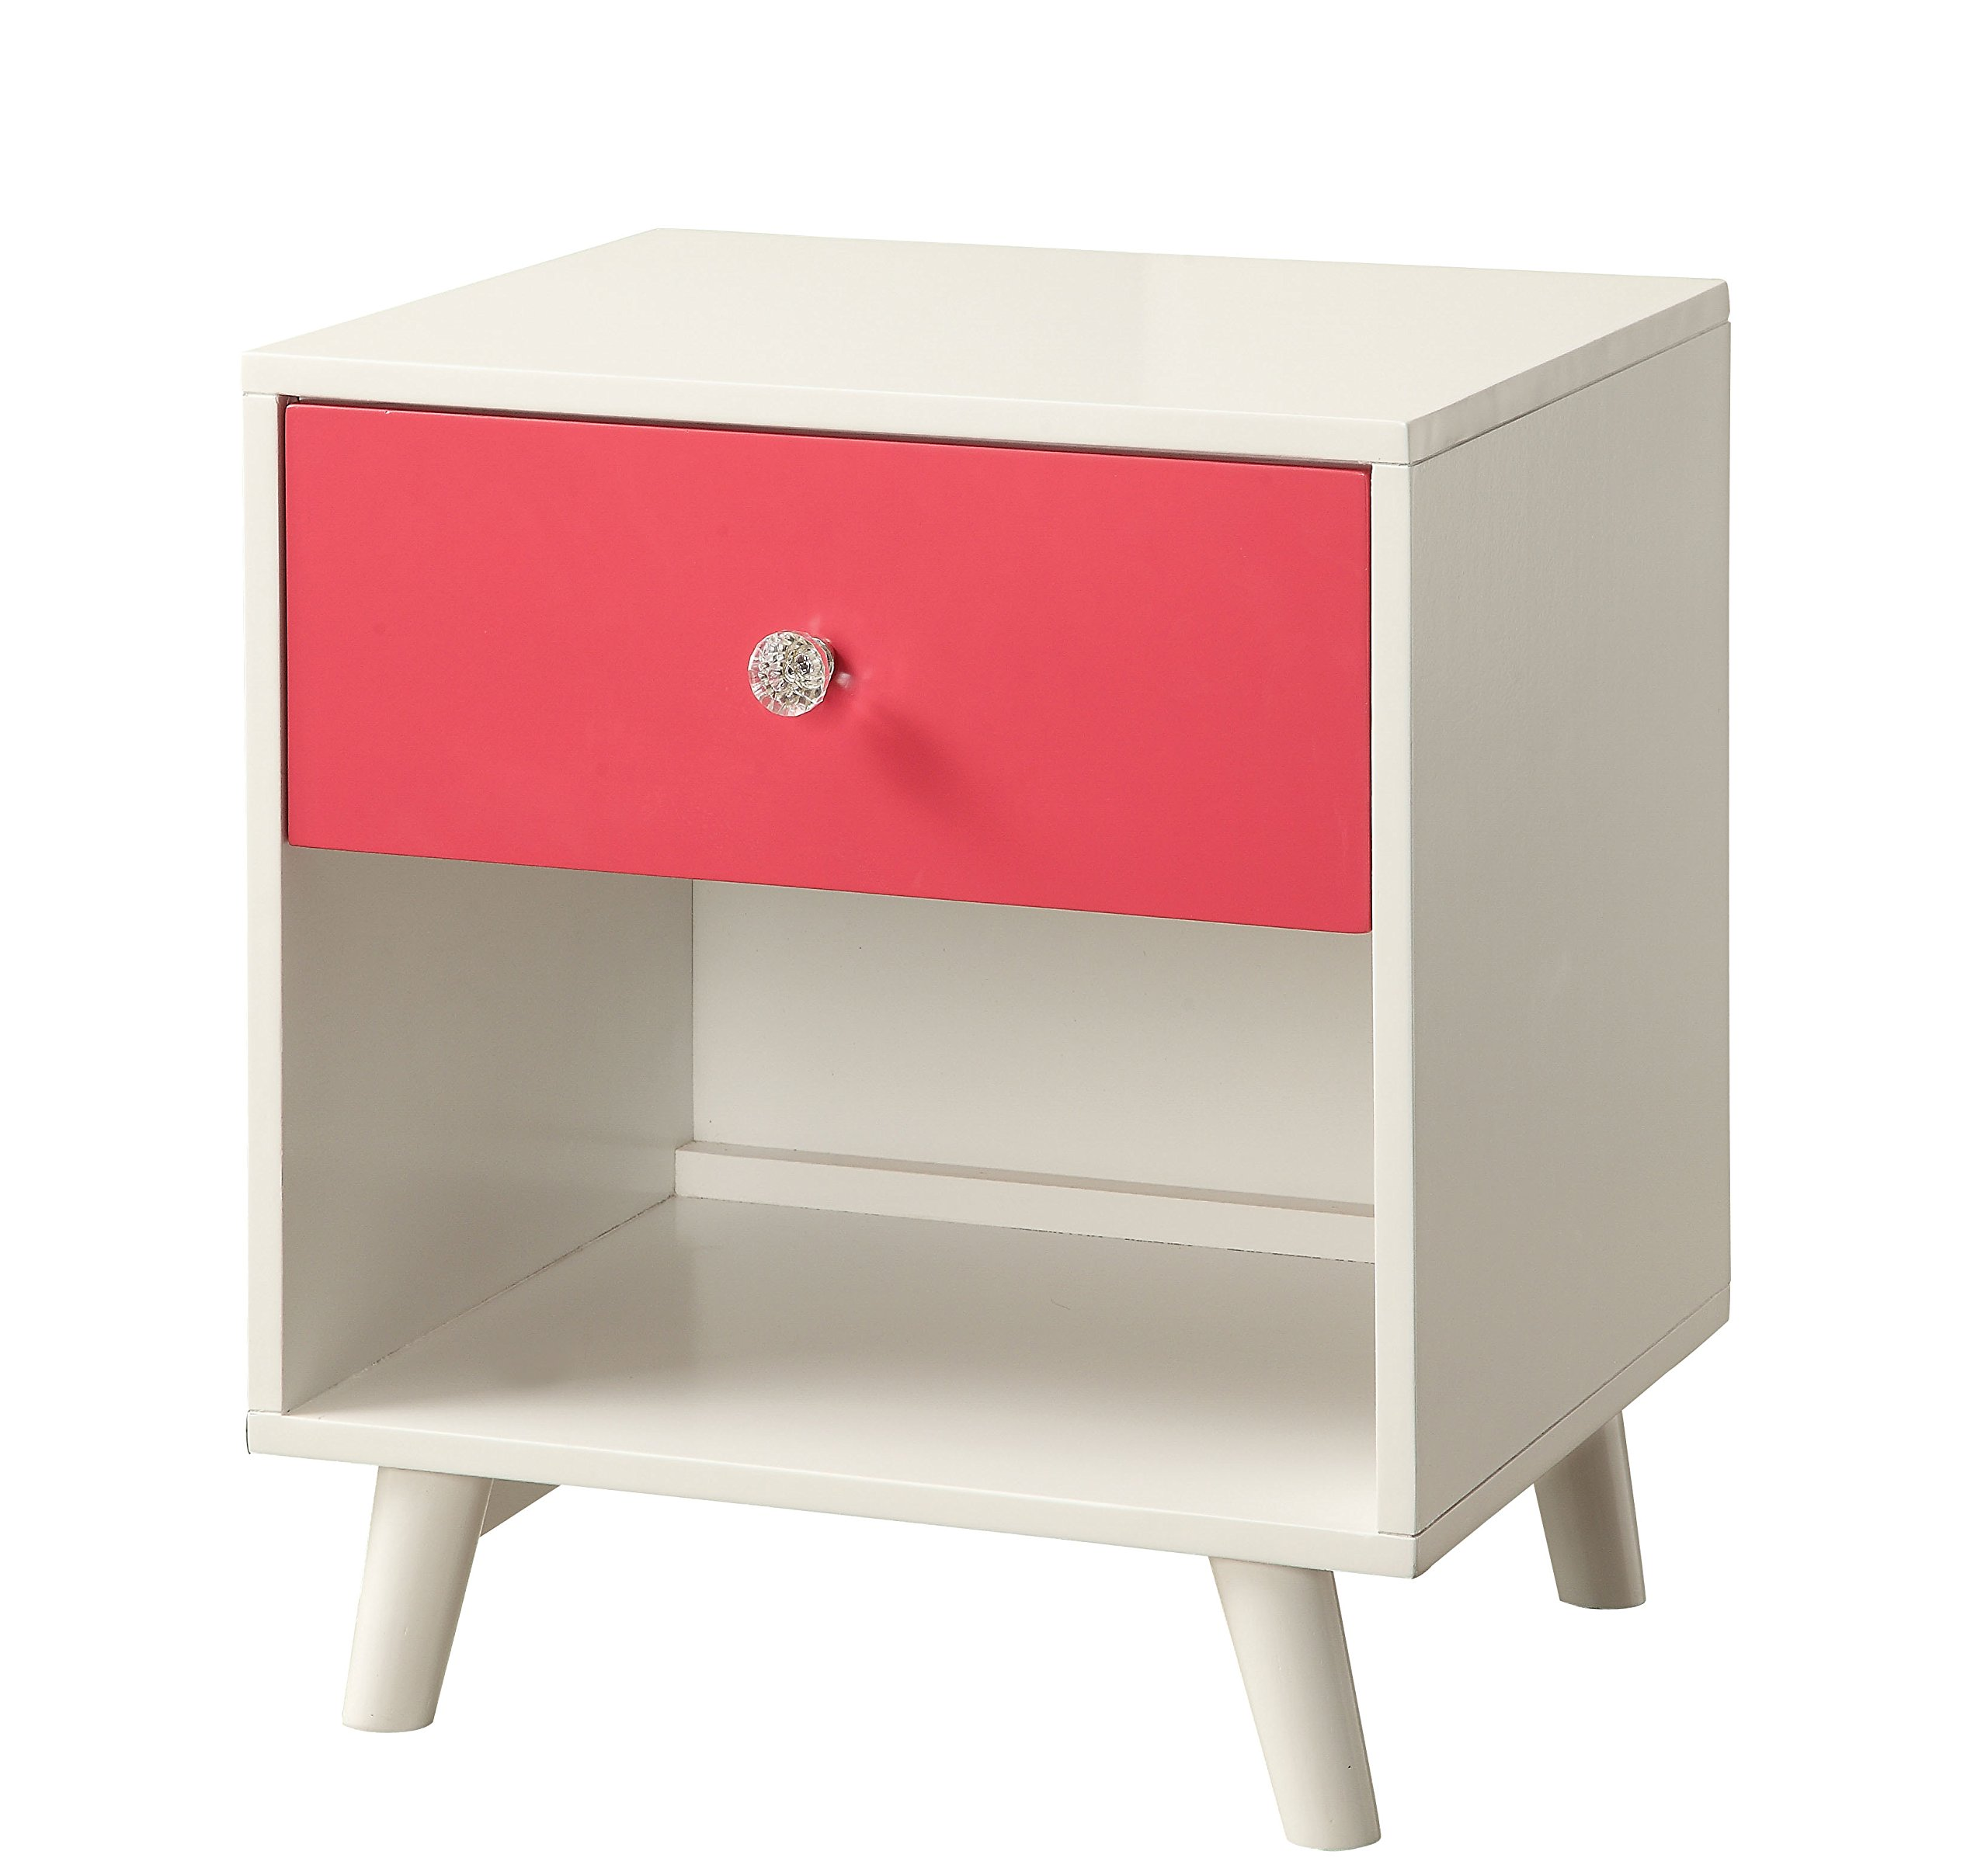 HOMES: Inside + Out ioHOMES Caprica Contemporary Youth Nightstand, Pink/White